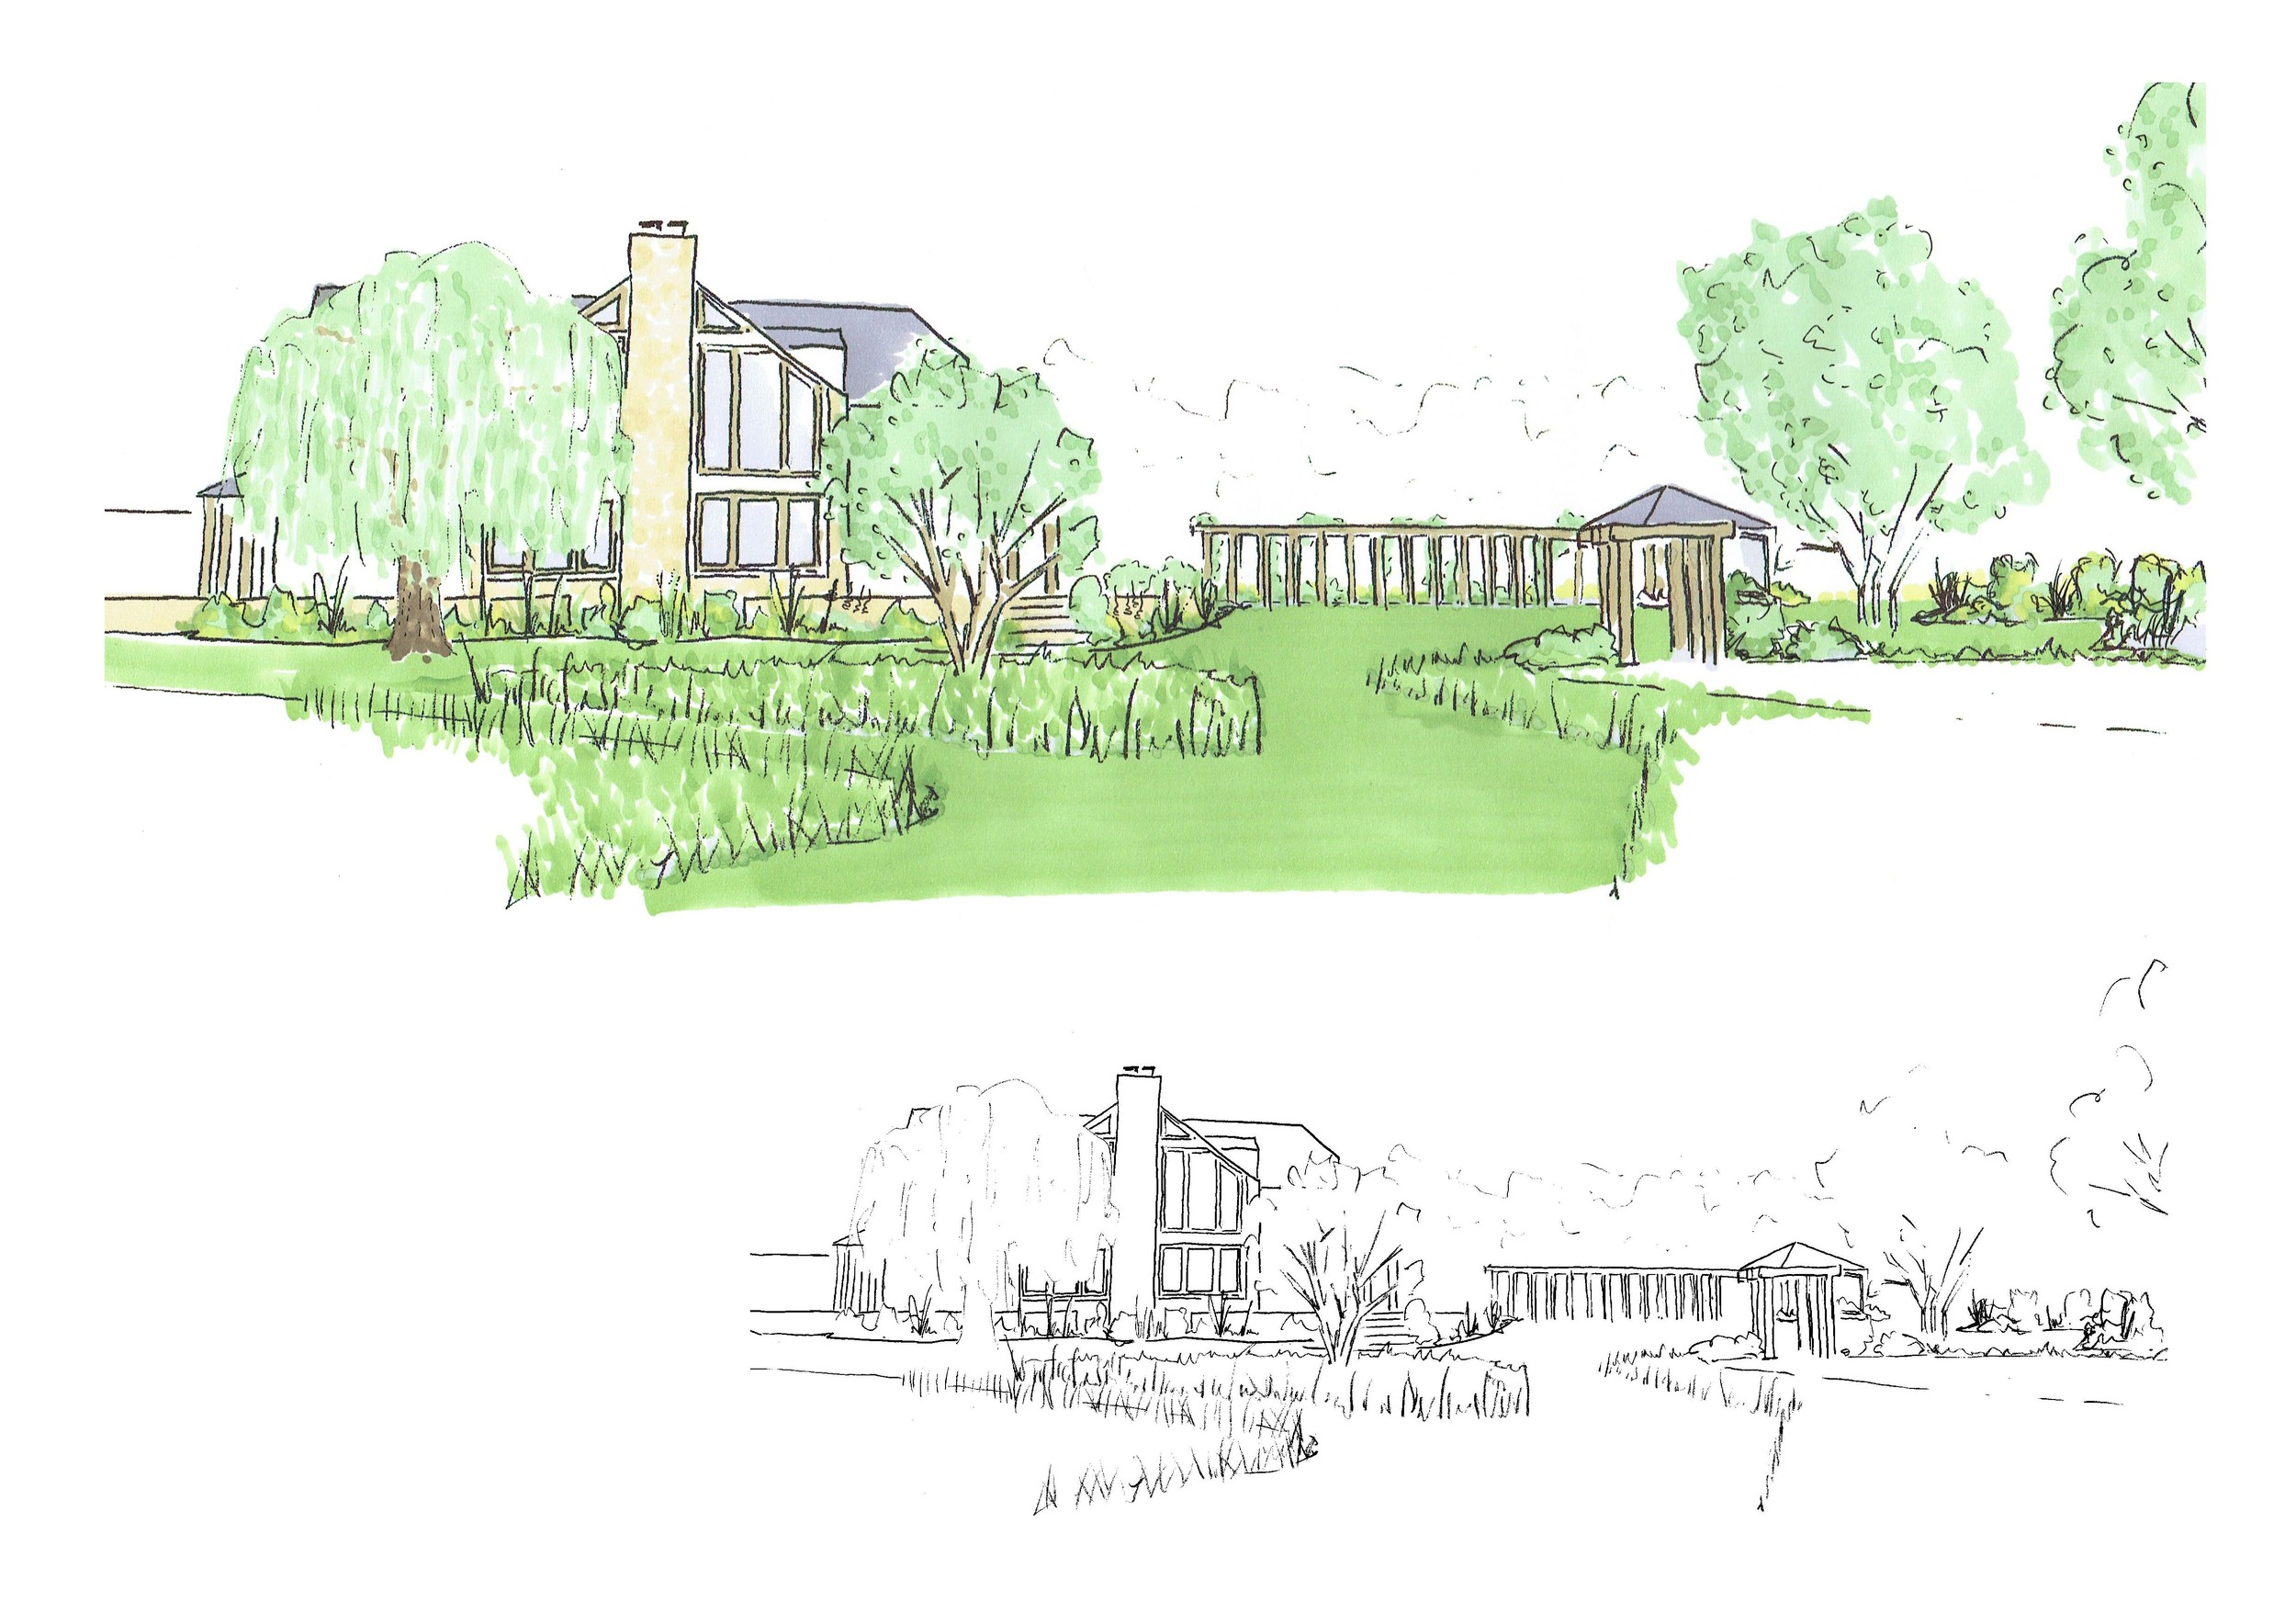 An artistic impression of the view back from the orchard.